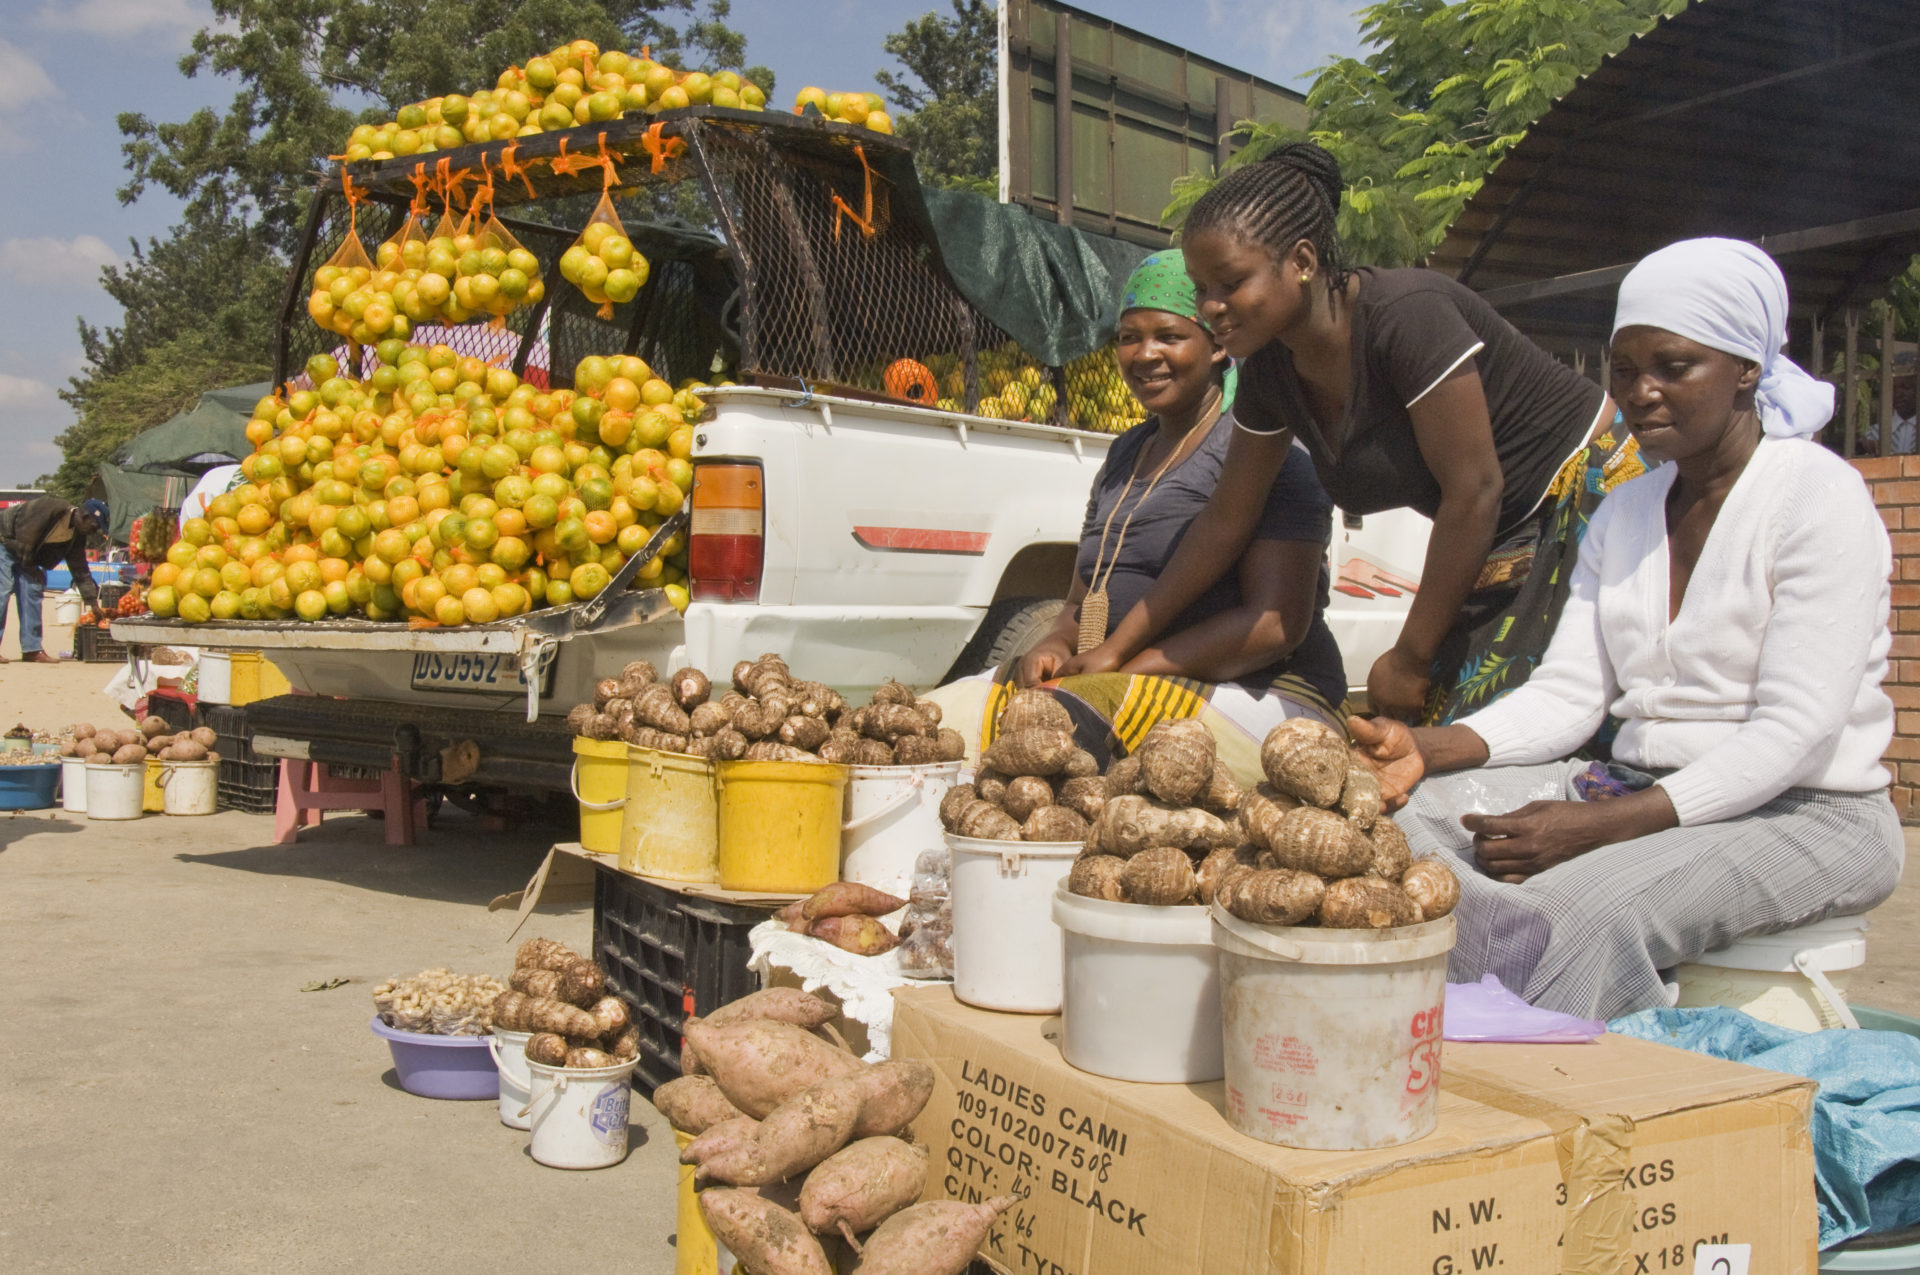 Food security: Hawkers at informal market and along roadside in Acornhoek - Hoedspruit, Limpopo Province South Africa. Photo: Supplied/Flickr